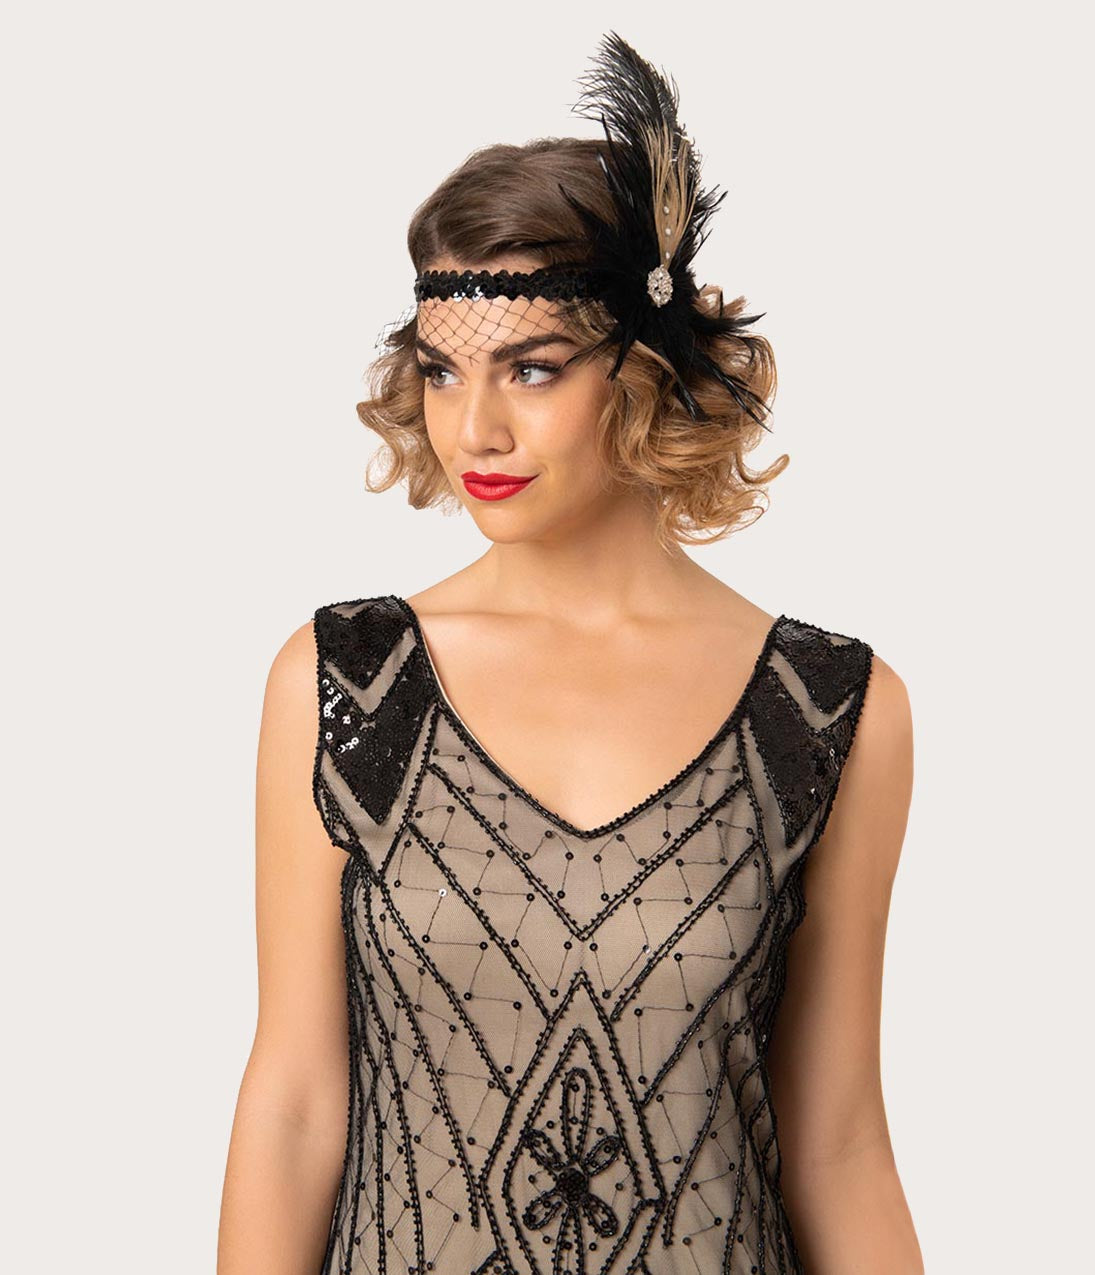 1920s Flapper Headband, Gatsby Headpiece, Wigs Black Sequin Netted Roaring 20S Feather Headpiece $24.00 AT vintagedancer.com